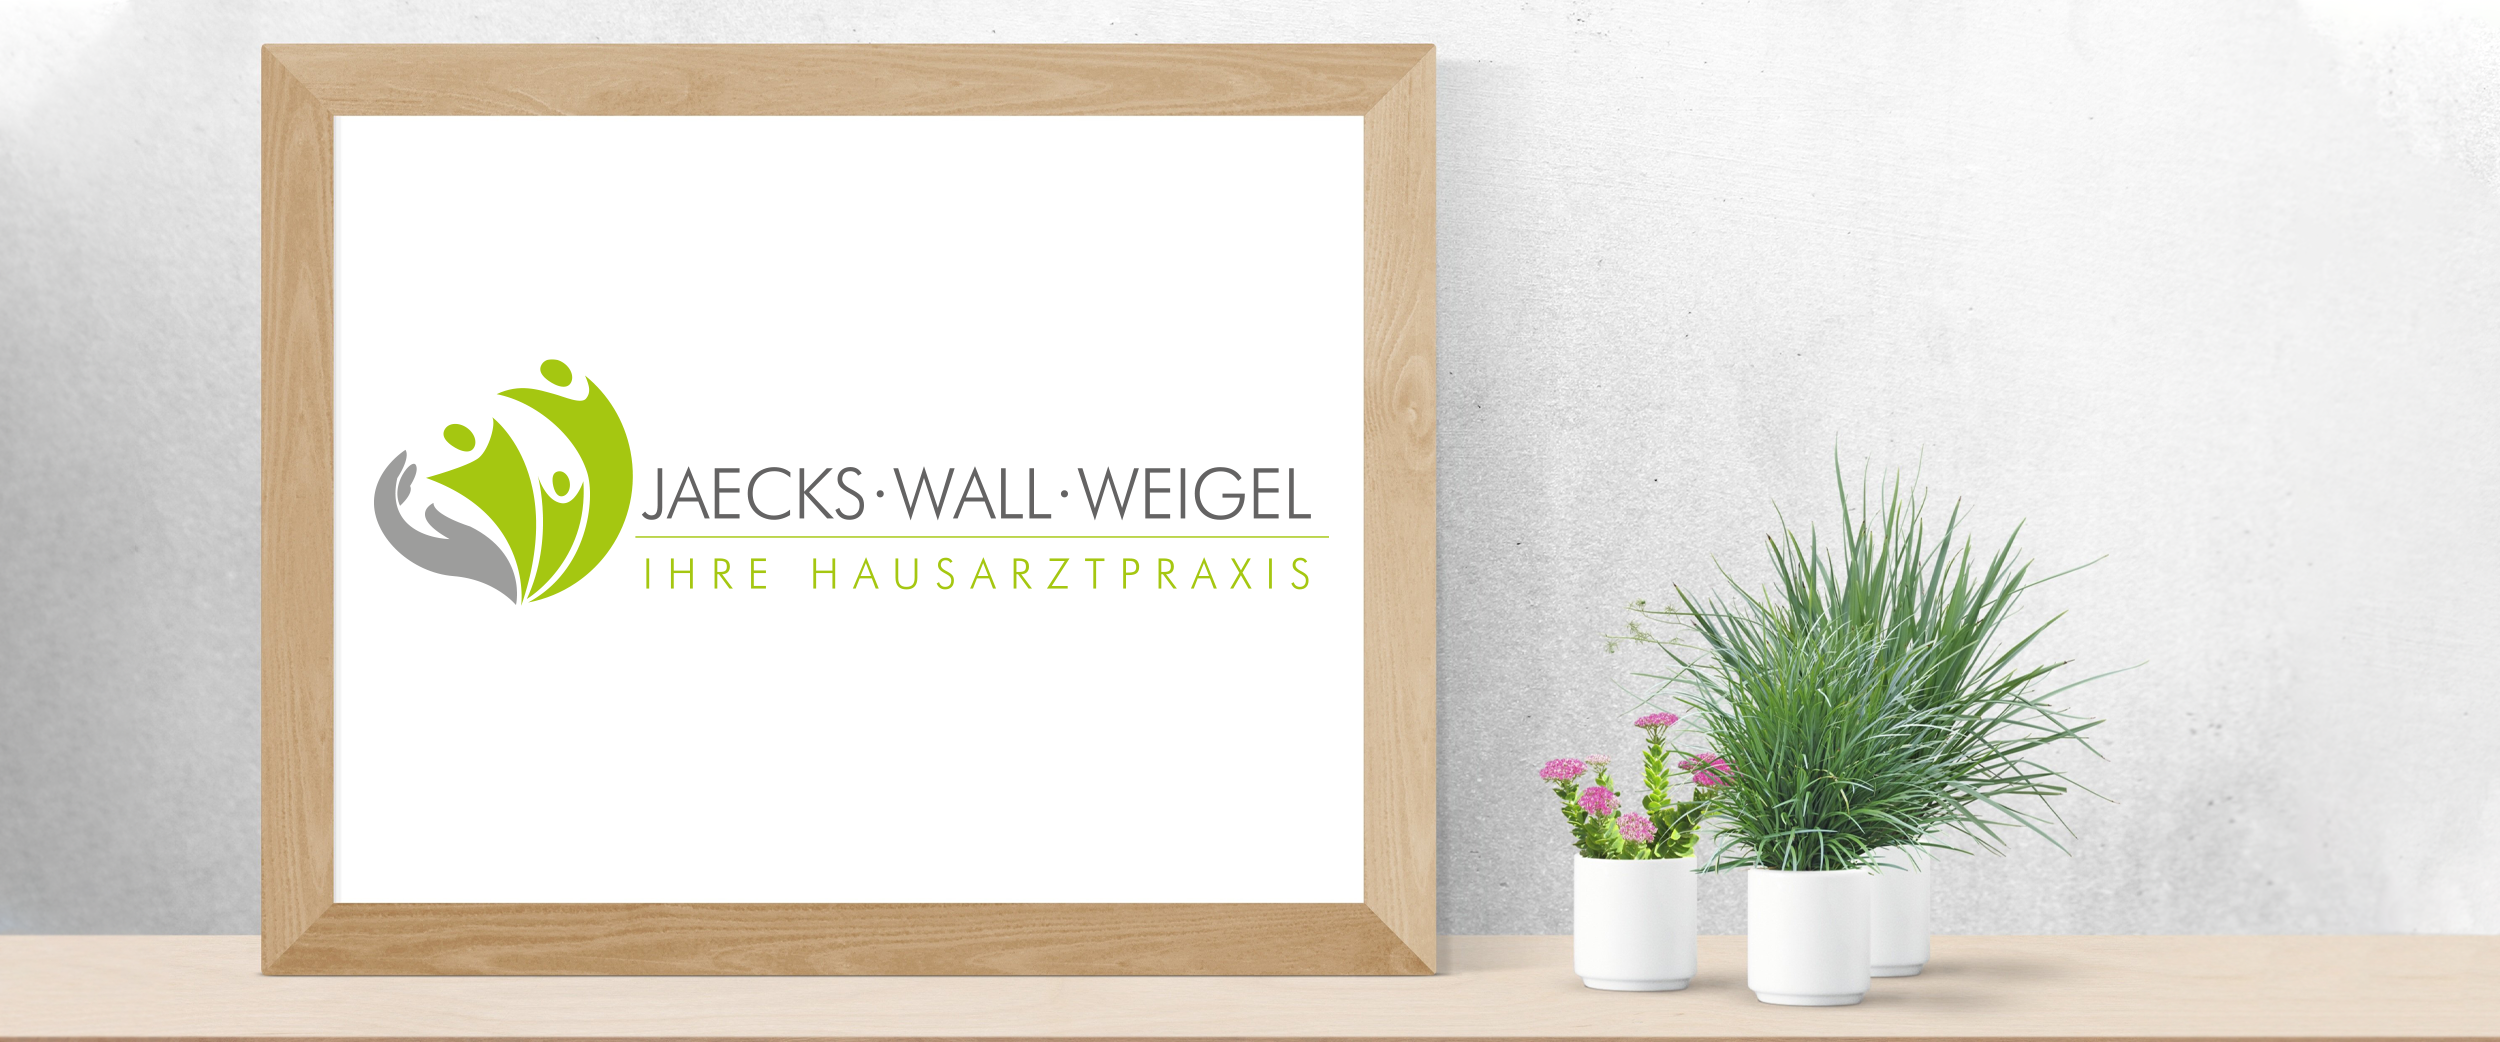 Hausarztpraxis Jaecks Wall Weigel